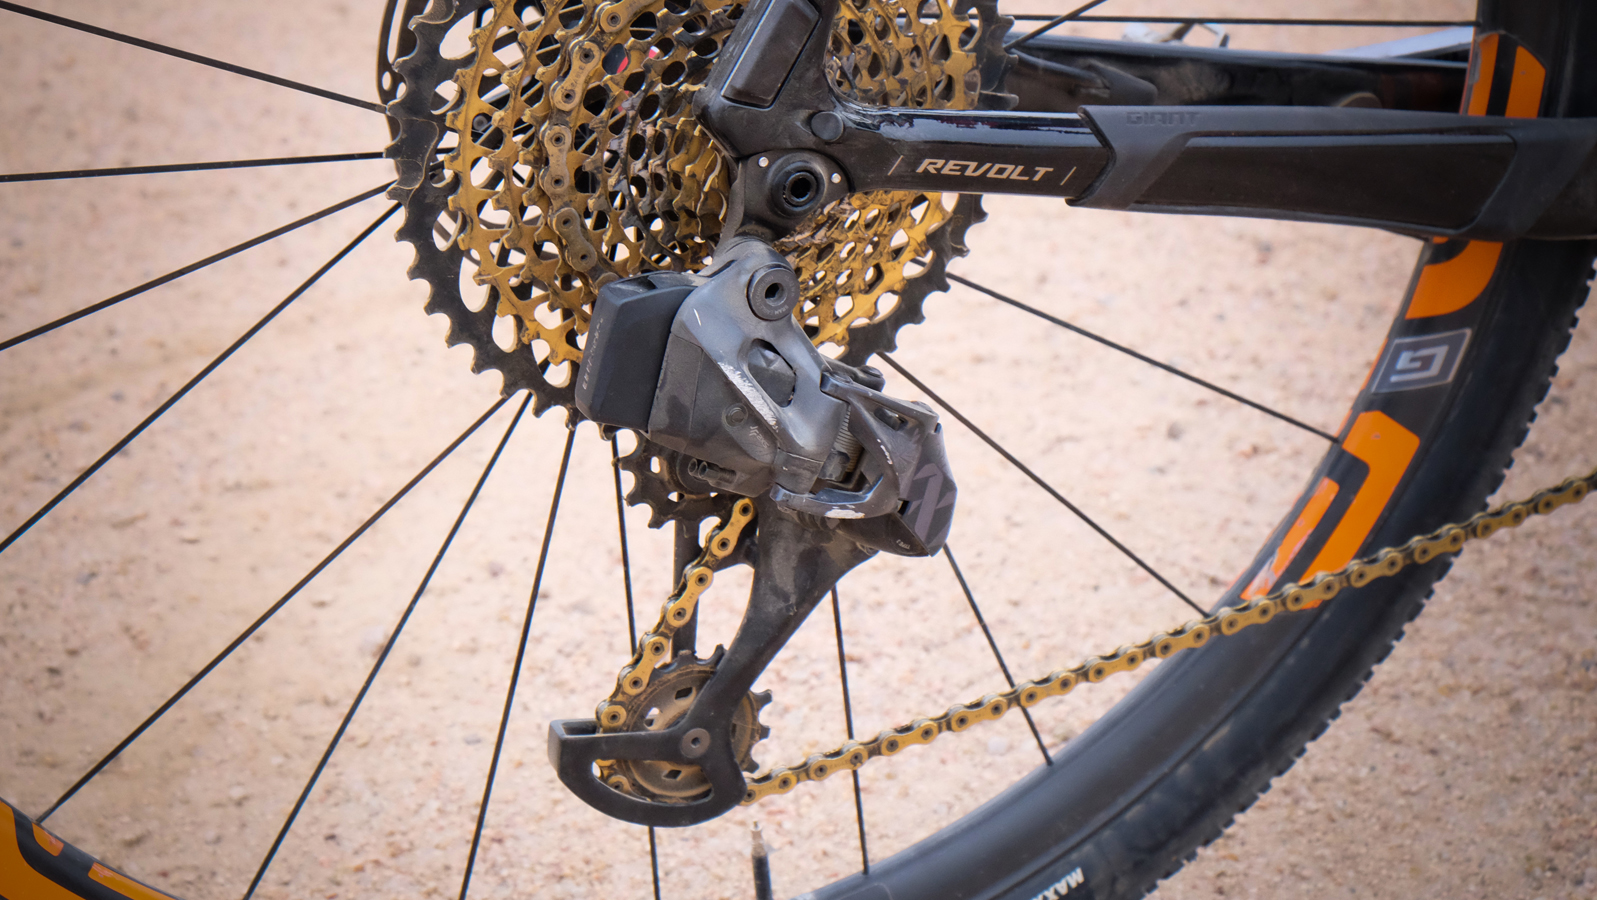 In back, Rusch's 10-50 SRAM Eagle cassette is managed by a well-worn eTap AXS derailleur.